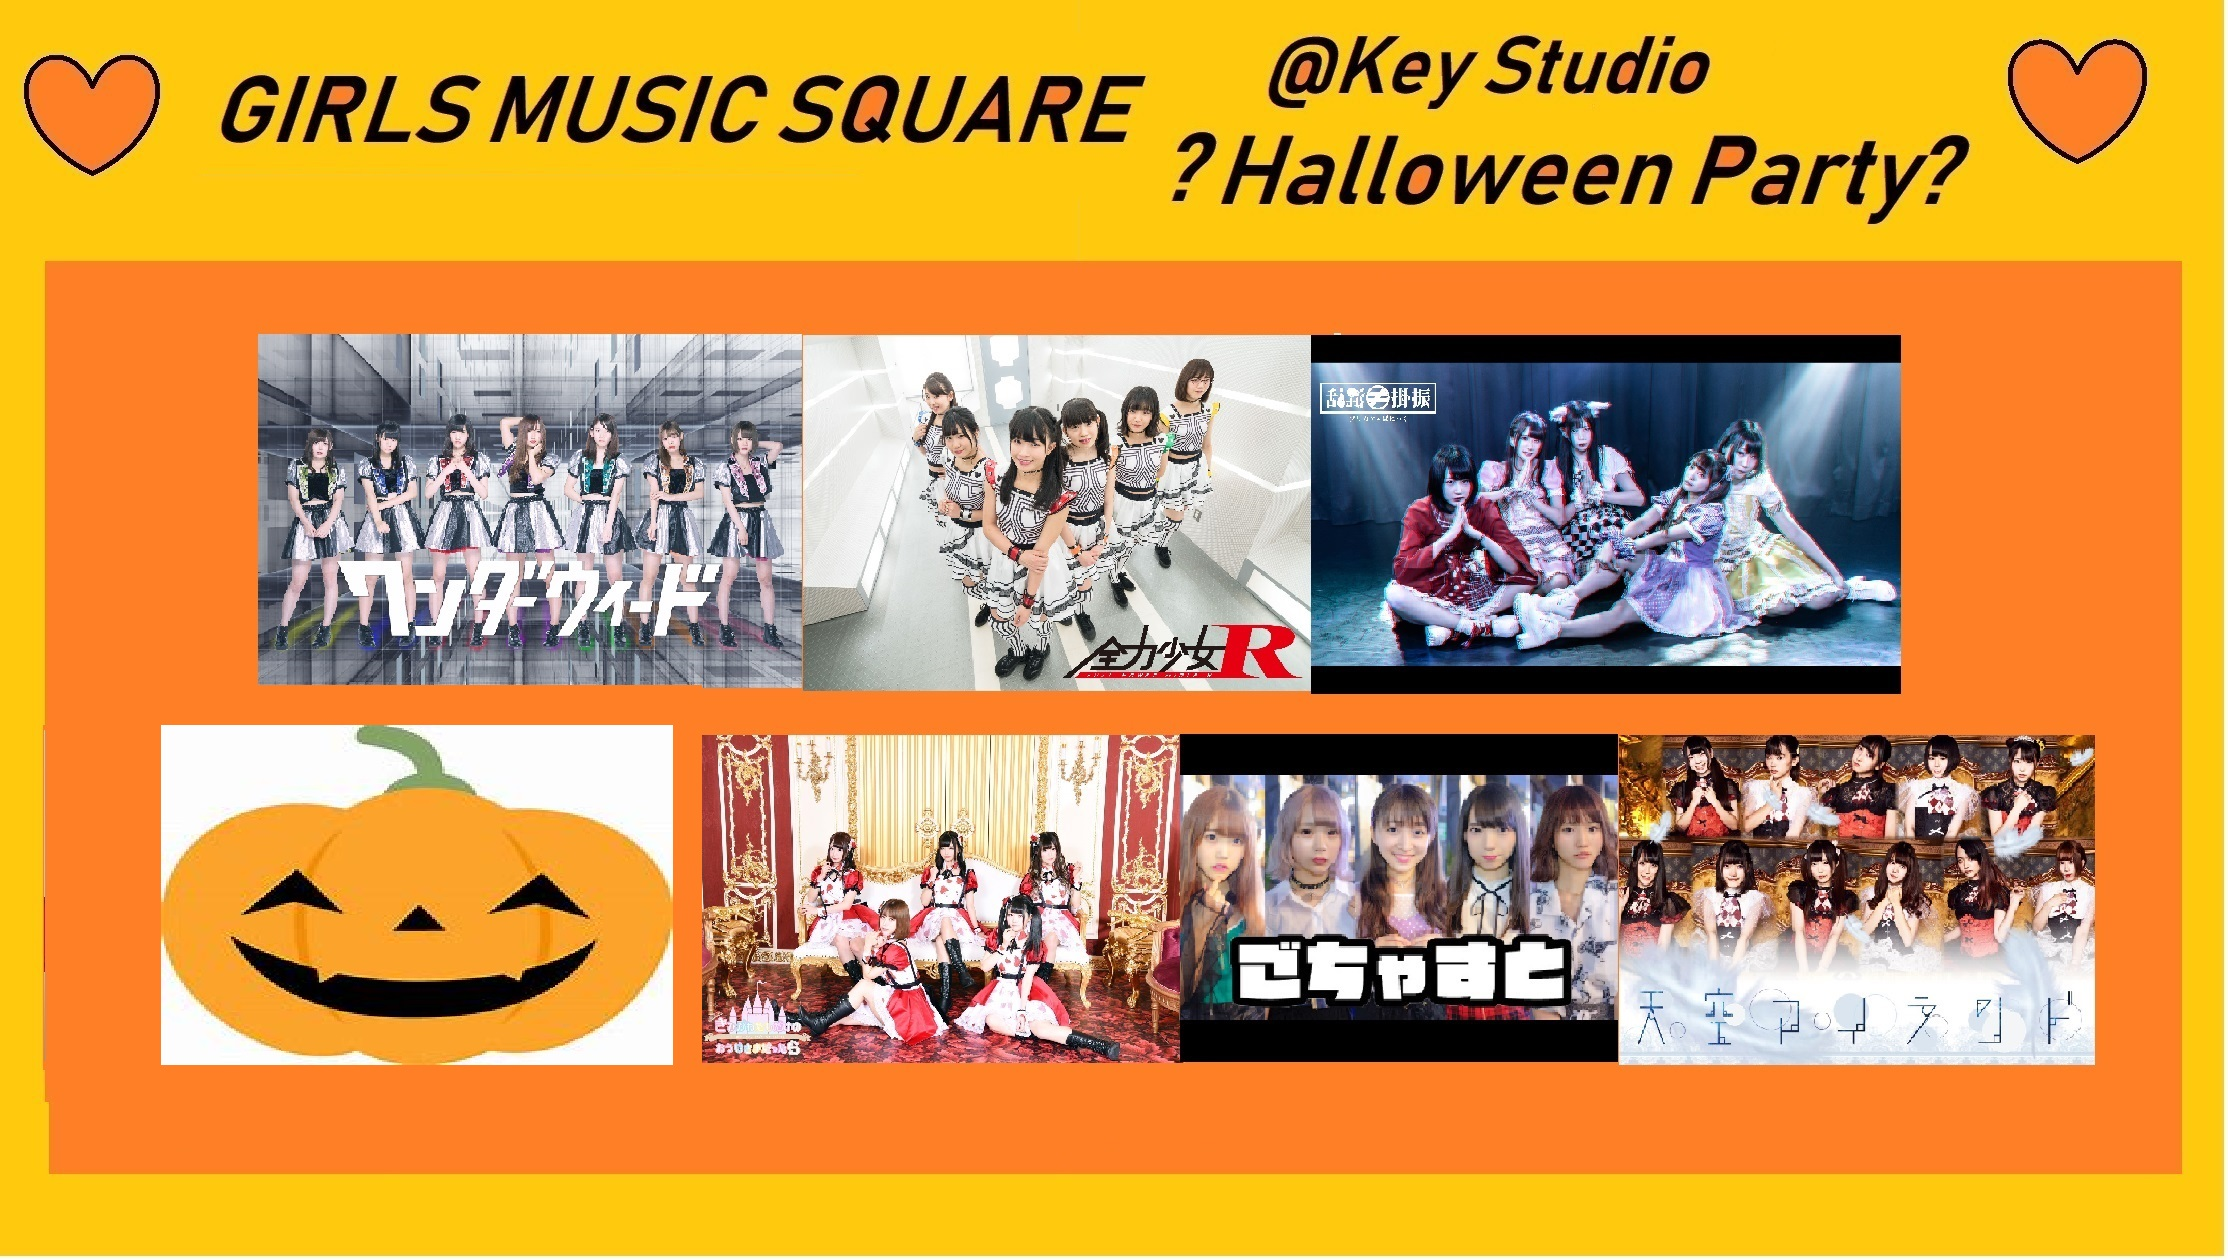 『 GIRLS MUSIC SQUARE @Key Studio ?Halloween Party? 』